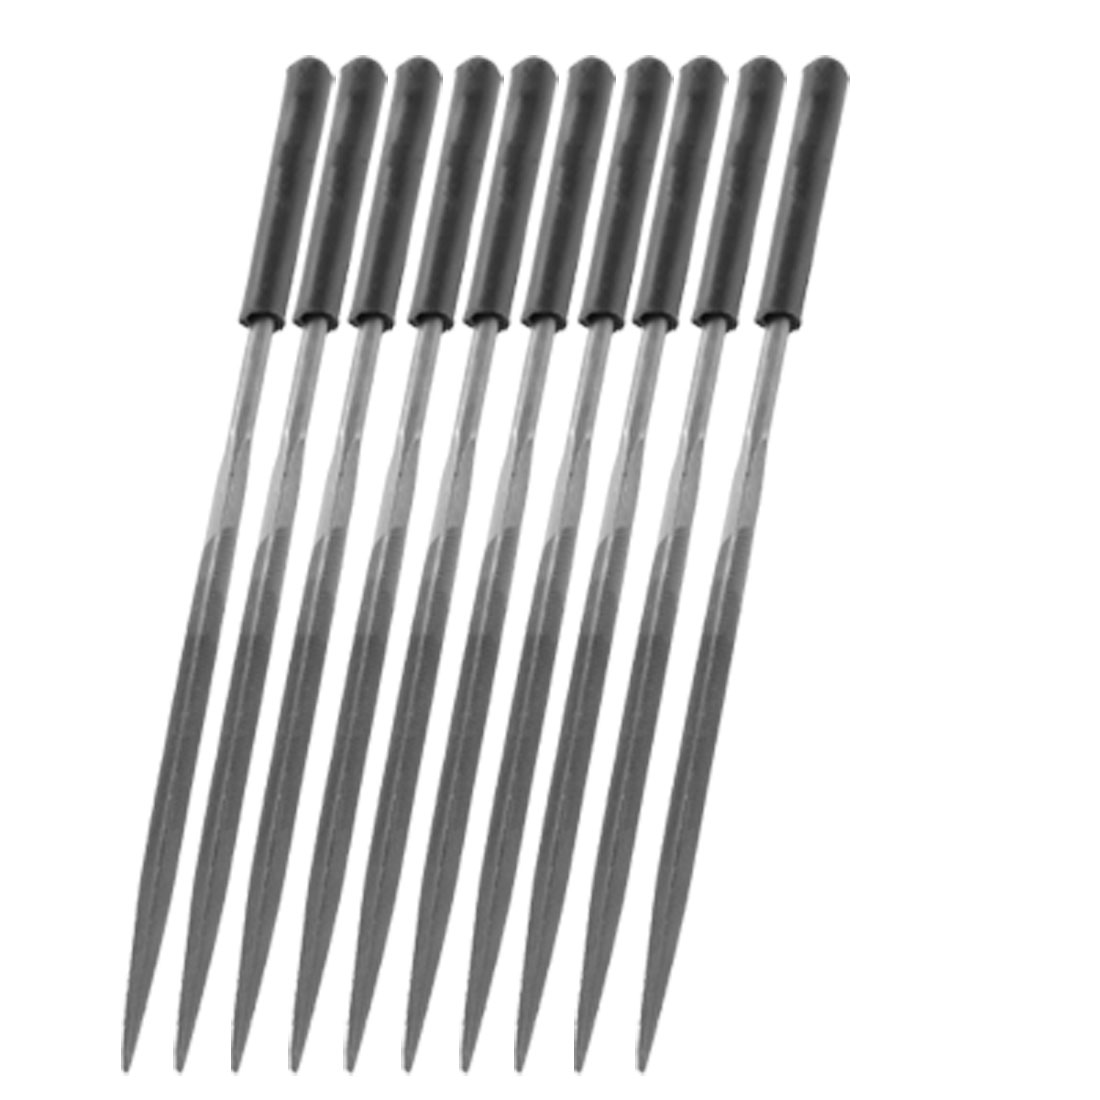 10Pcs Jewelers 16cm Three Square Triangle Needle Files